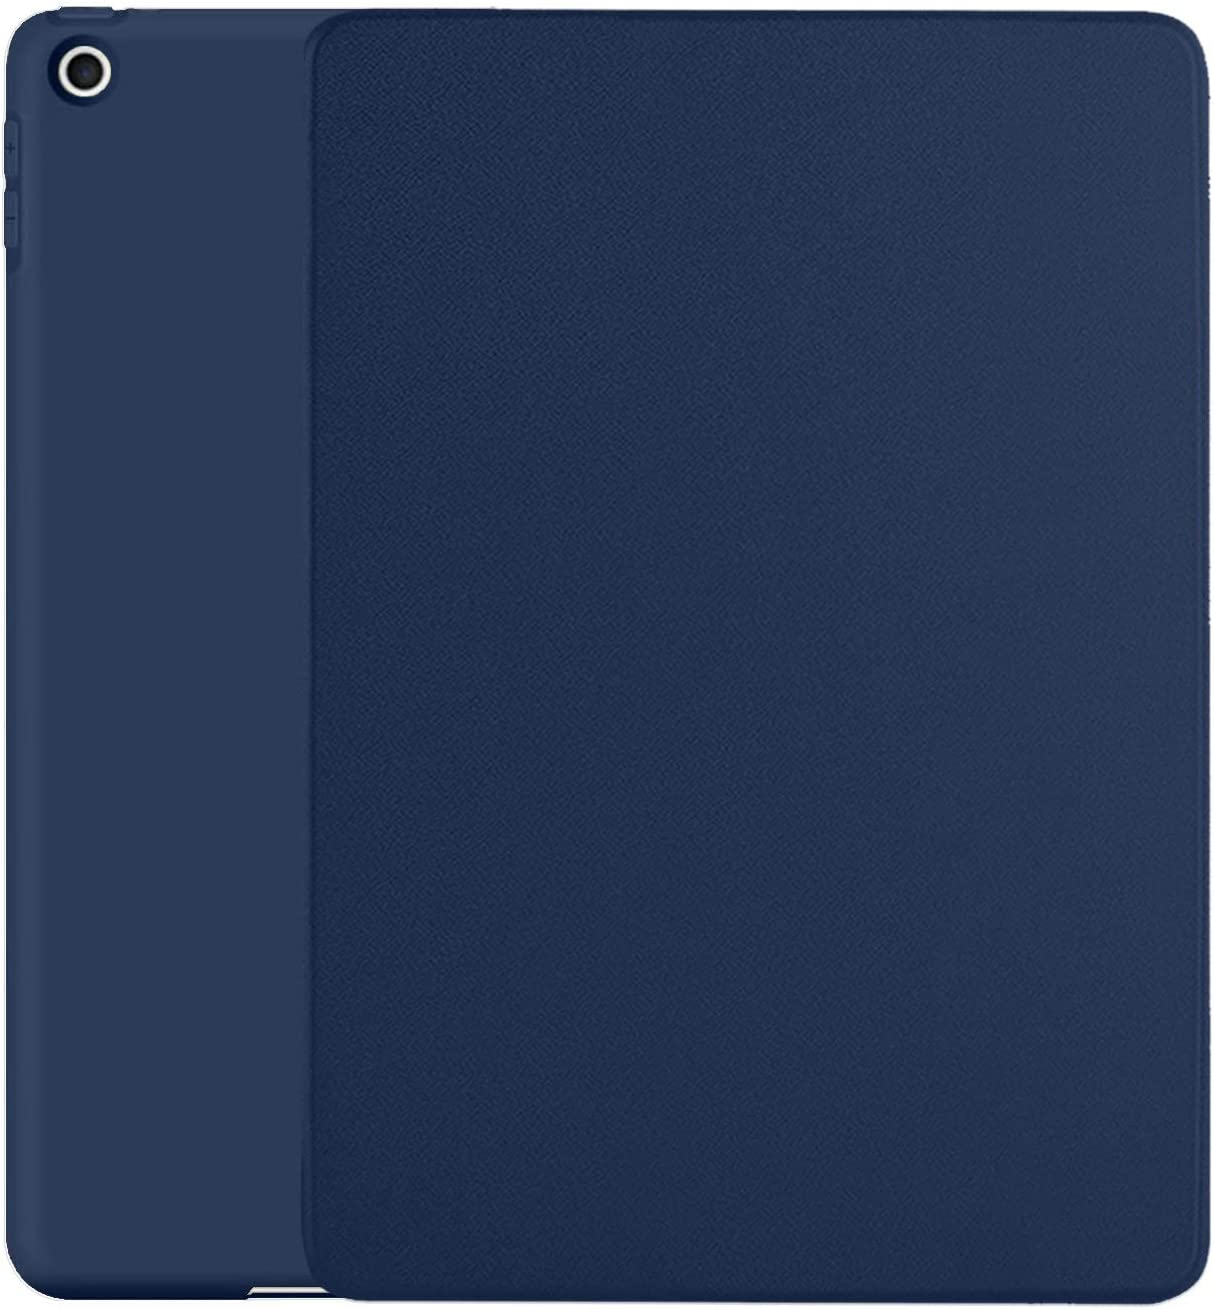 DuraSafe Cases iPad 10.2 Case 2020 iPad 8th / 2019 iPad 7th Gen Slim Fit Viewing/Typing Stand Soft Silicone Back [Protective Smart Cover] for 10.2